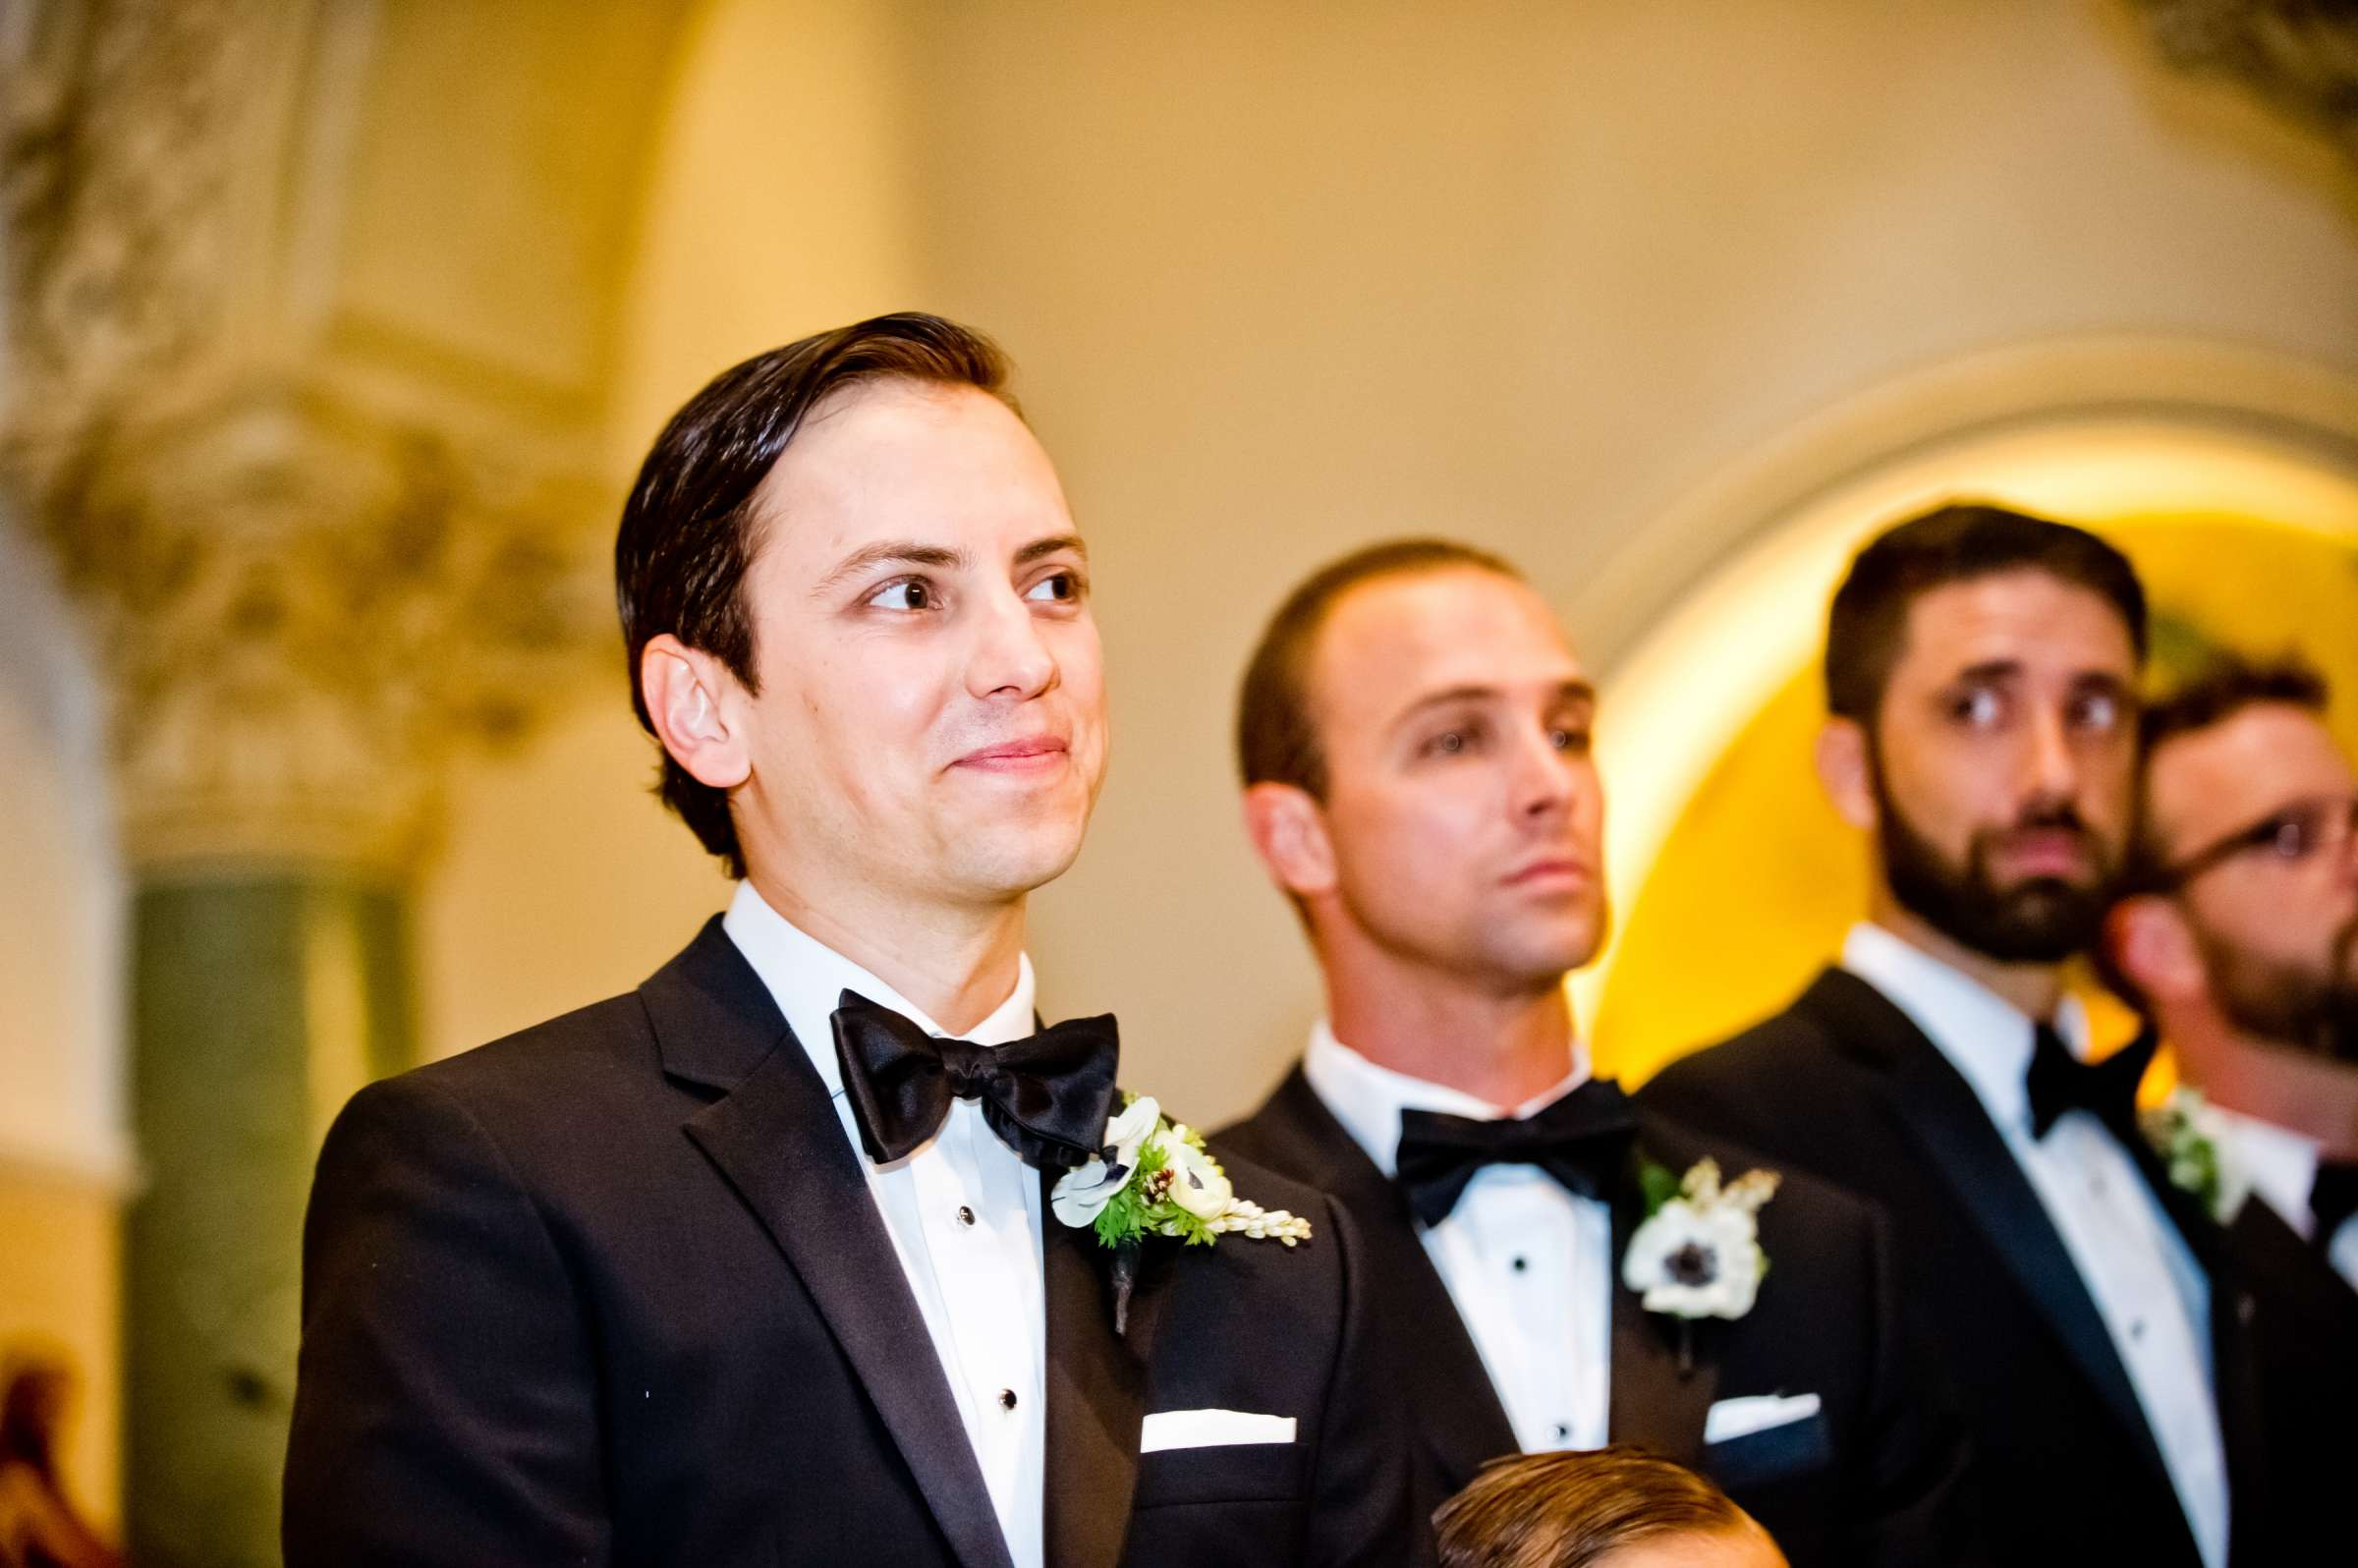 The Prado Wedding coordinated by Francine Ribeau Events, Rosalyn and Adam Wedding Photo #27 by True Photography